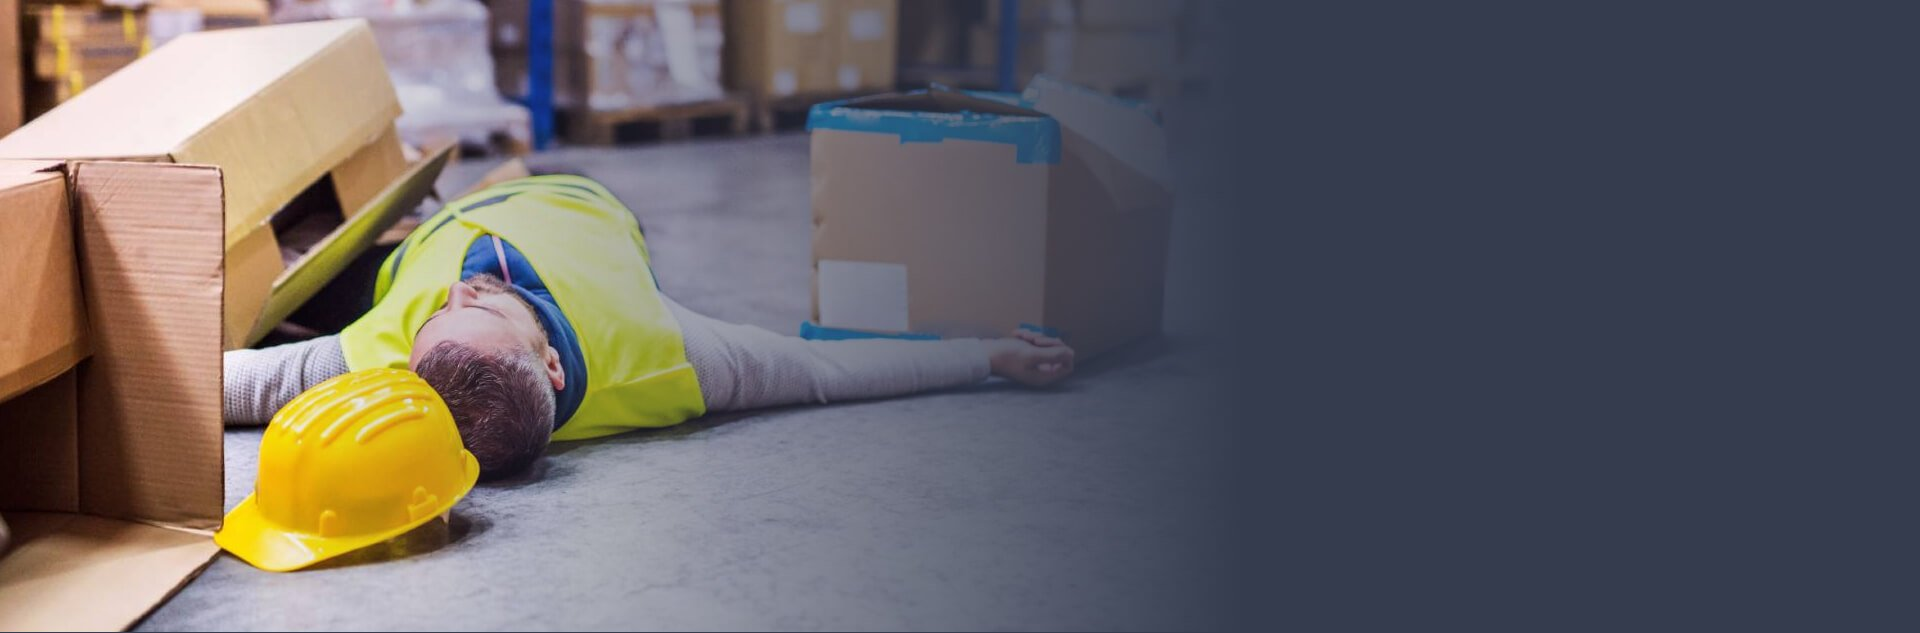 workers compensation lawyer for Massachusetts